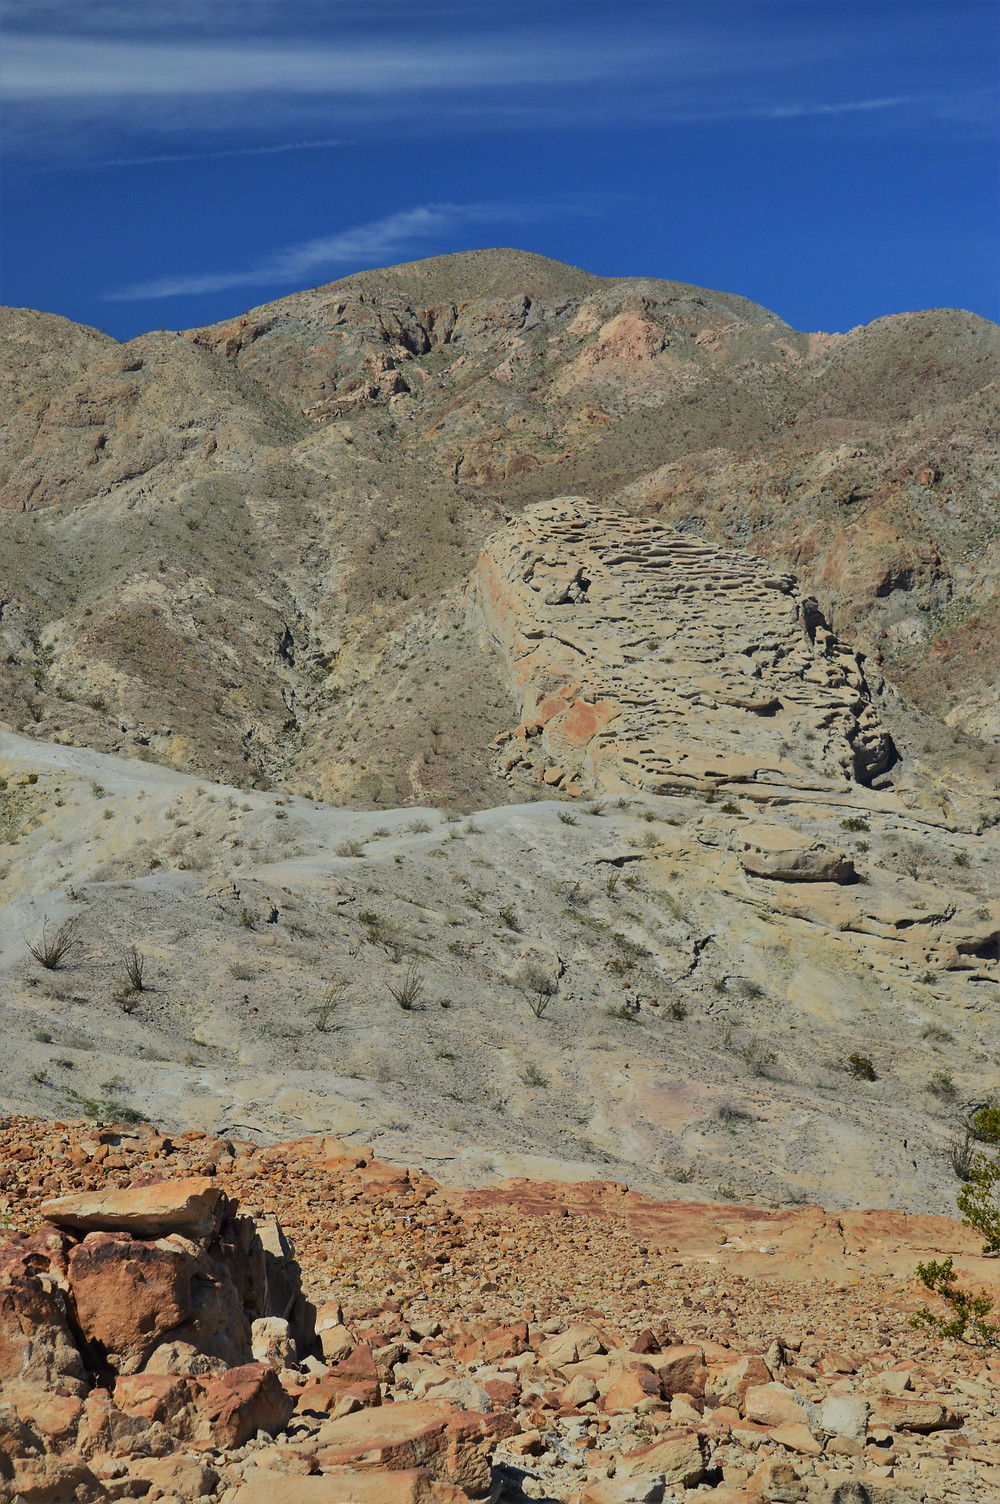 Eroded hills and mountains along the Calcite Mine Loop at Anza-Borrego State Park